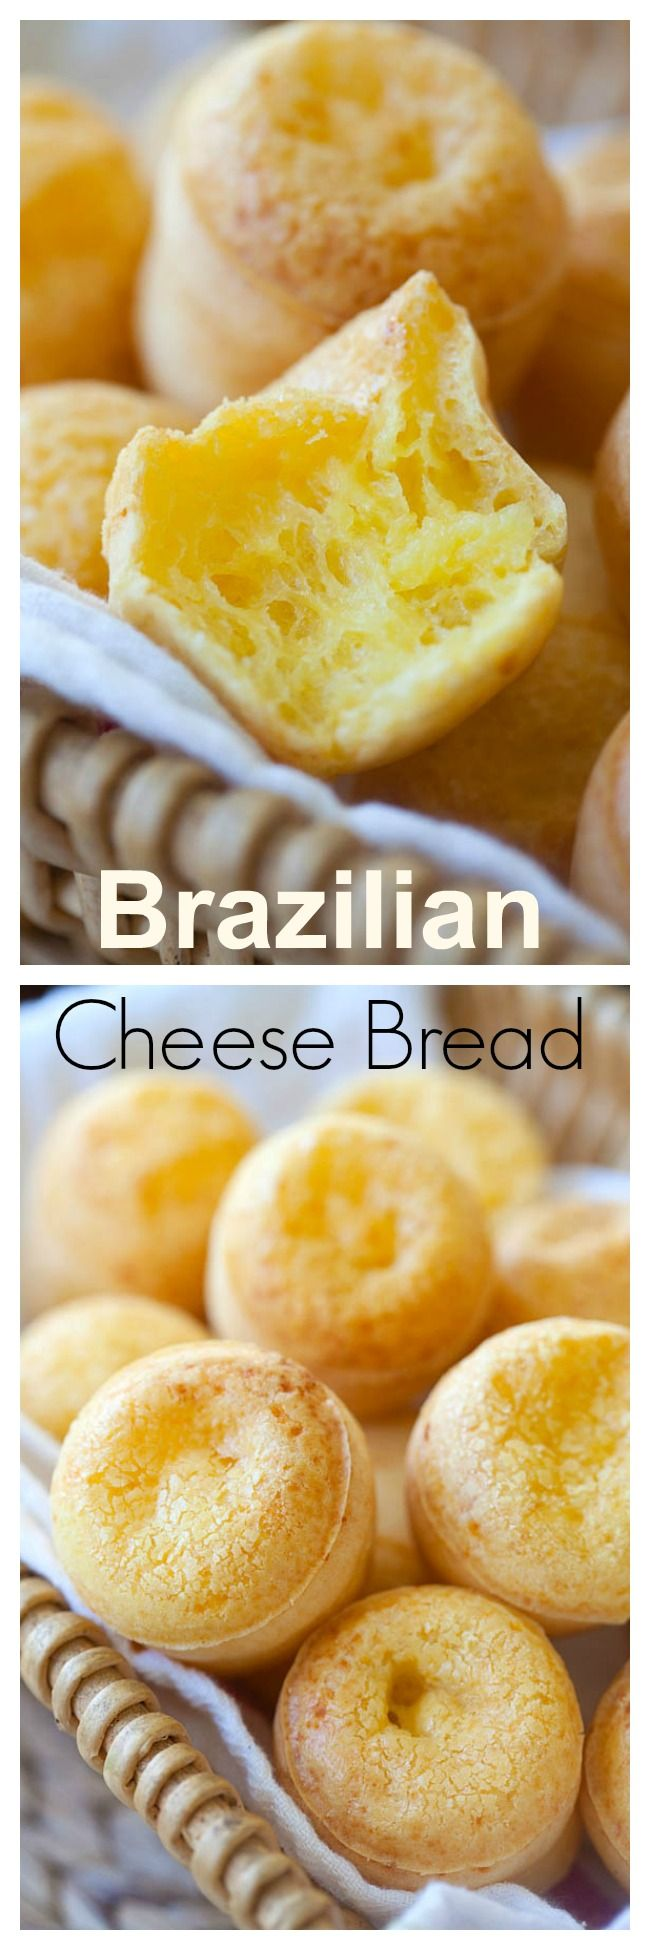 Brazilian cheese bread (Pão de Queijo) - easy 20-min recipe that yields the best and cheesiest bread, recipe by Simply Recipes - Elise Bauer | https://rasamalaysia.com